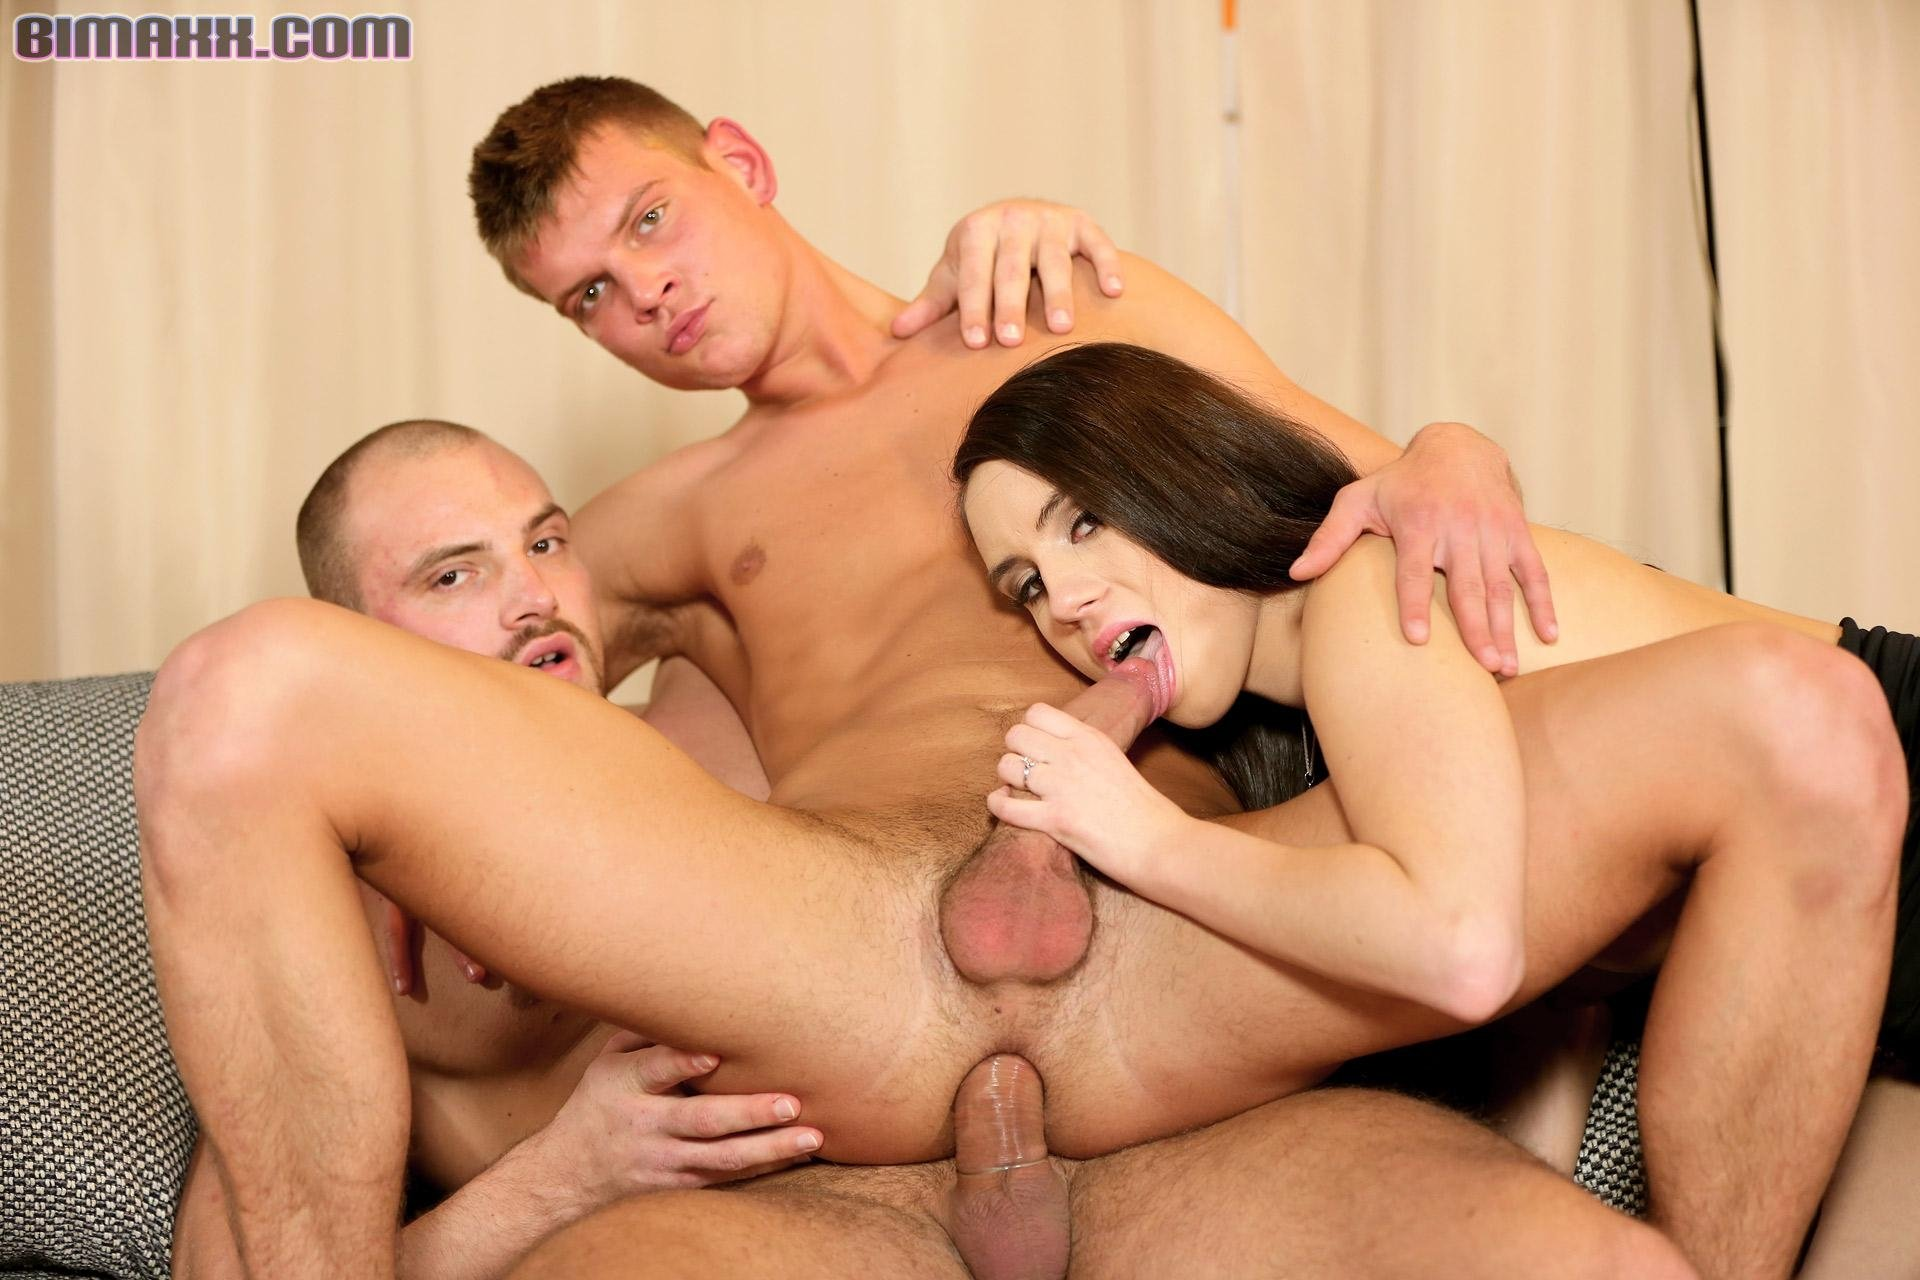 bareback-bisexual-couples-porn-male-sex-free